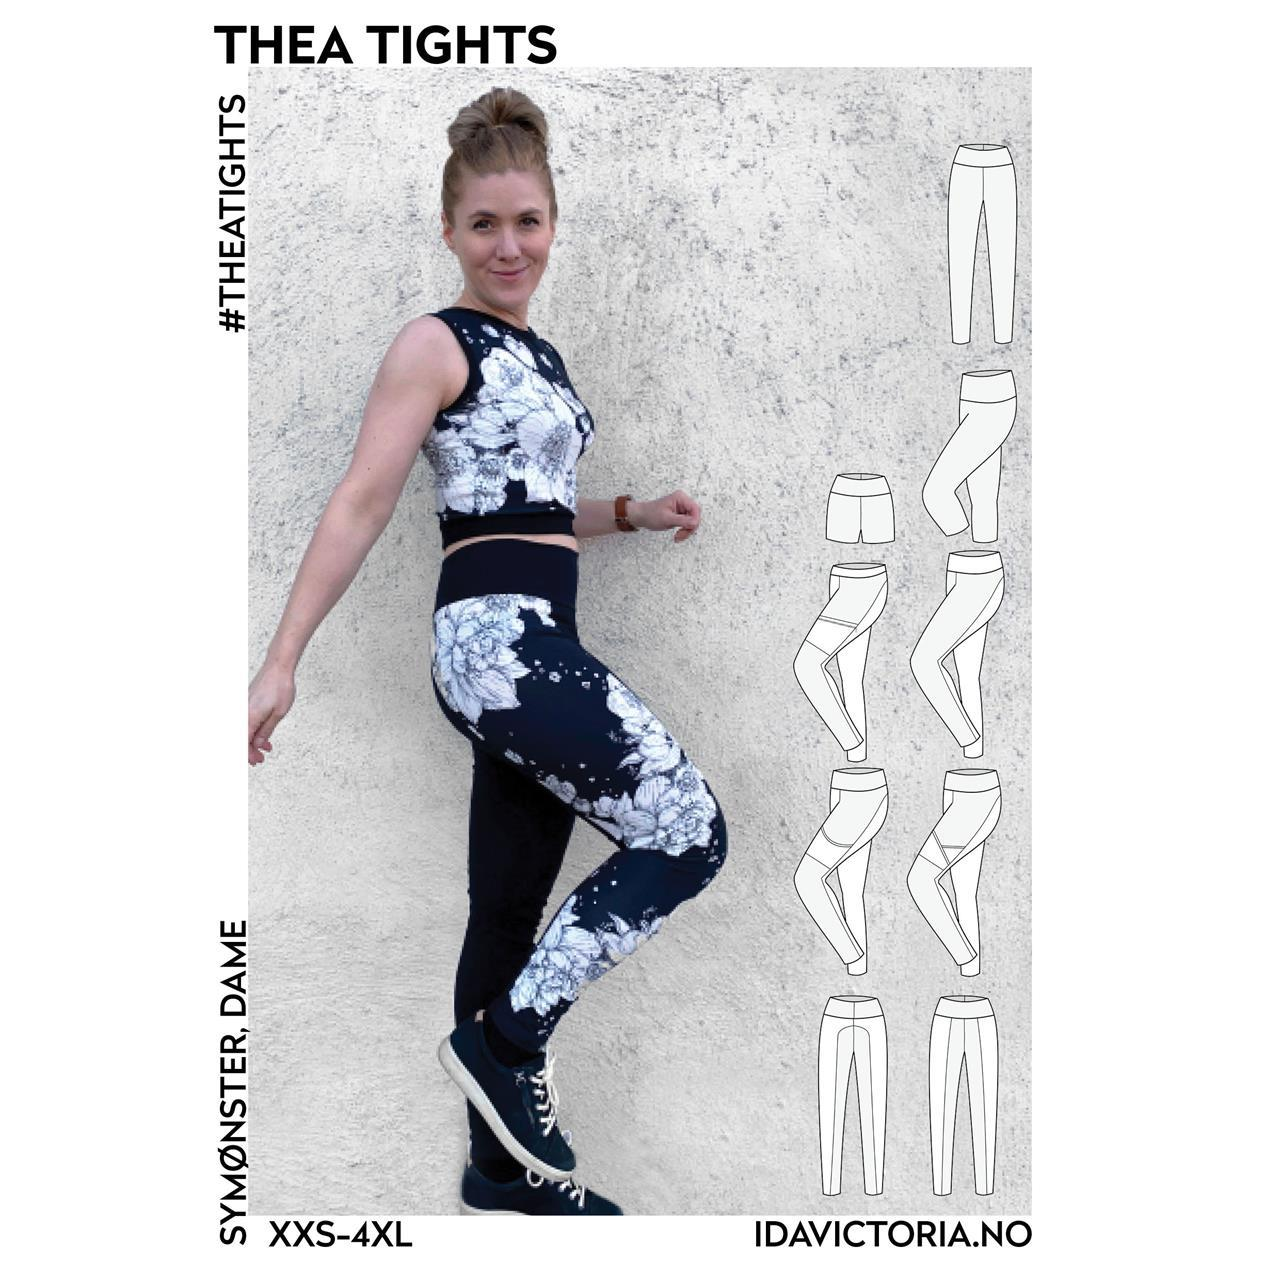 Thea thights